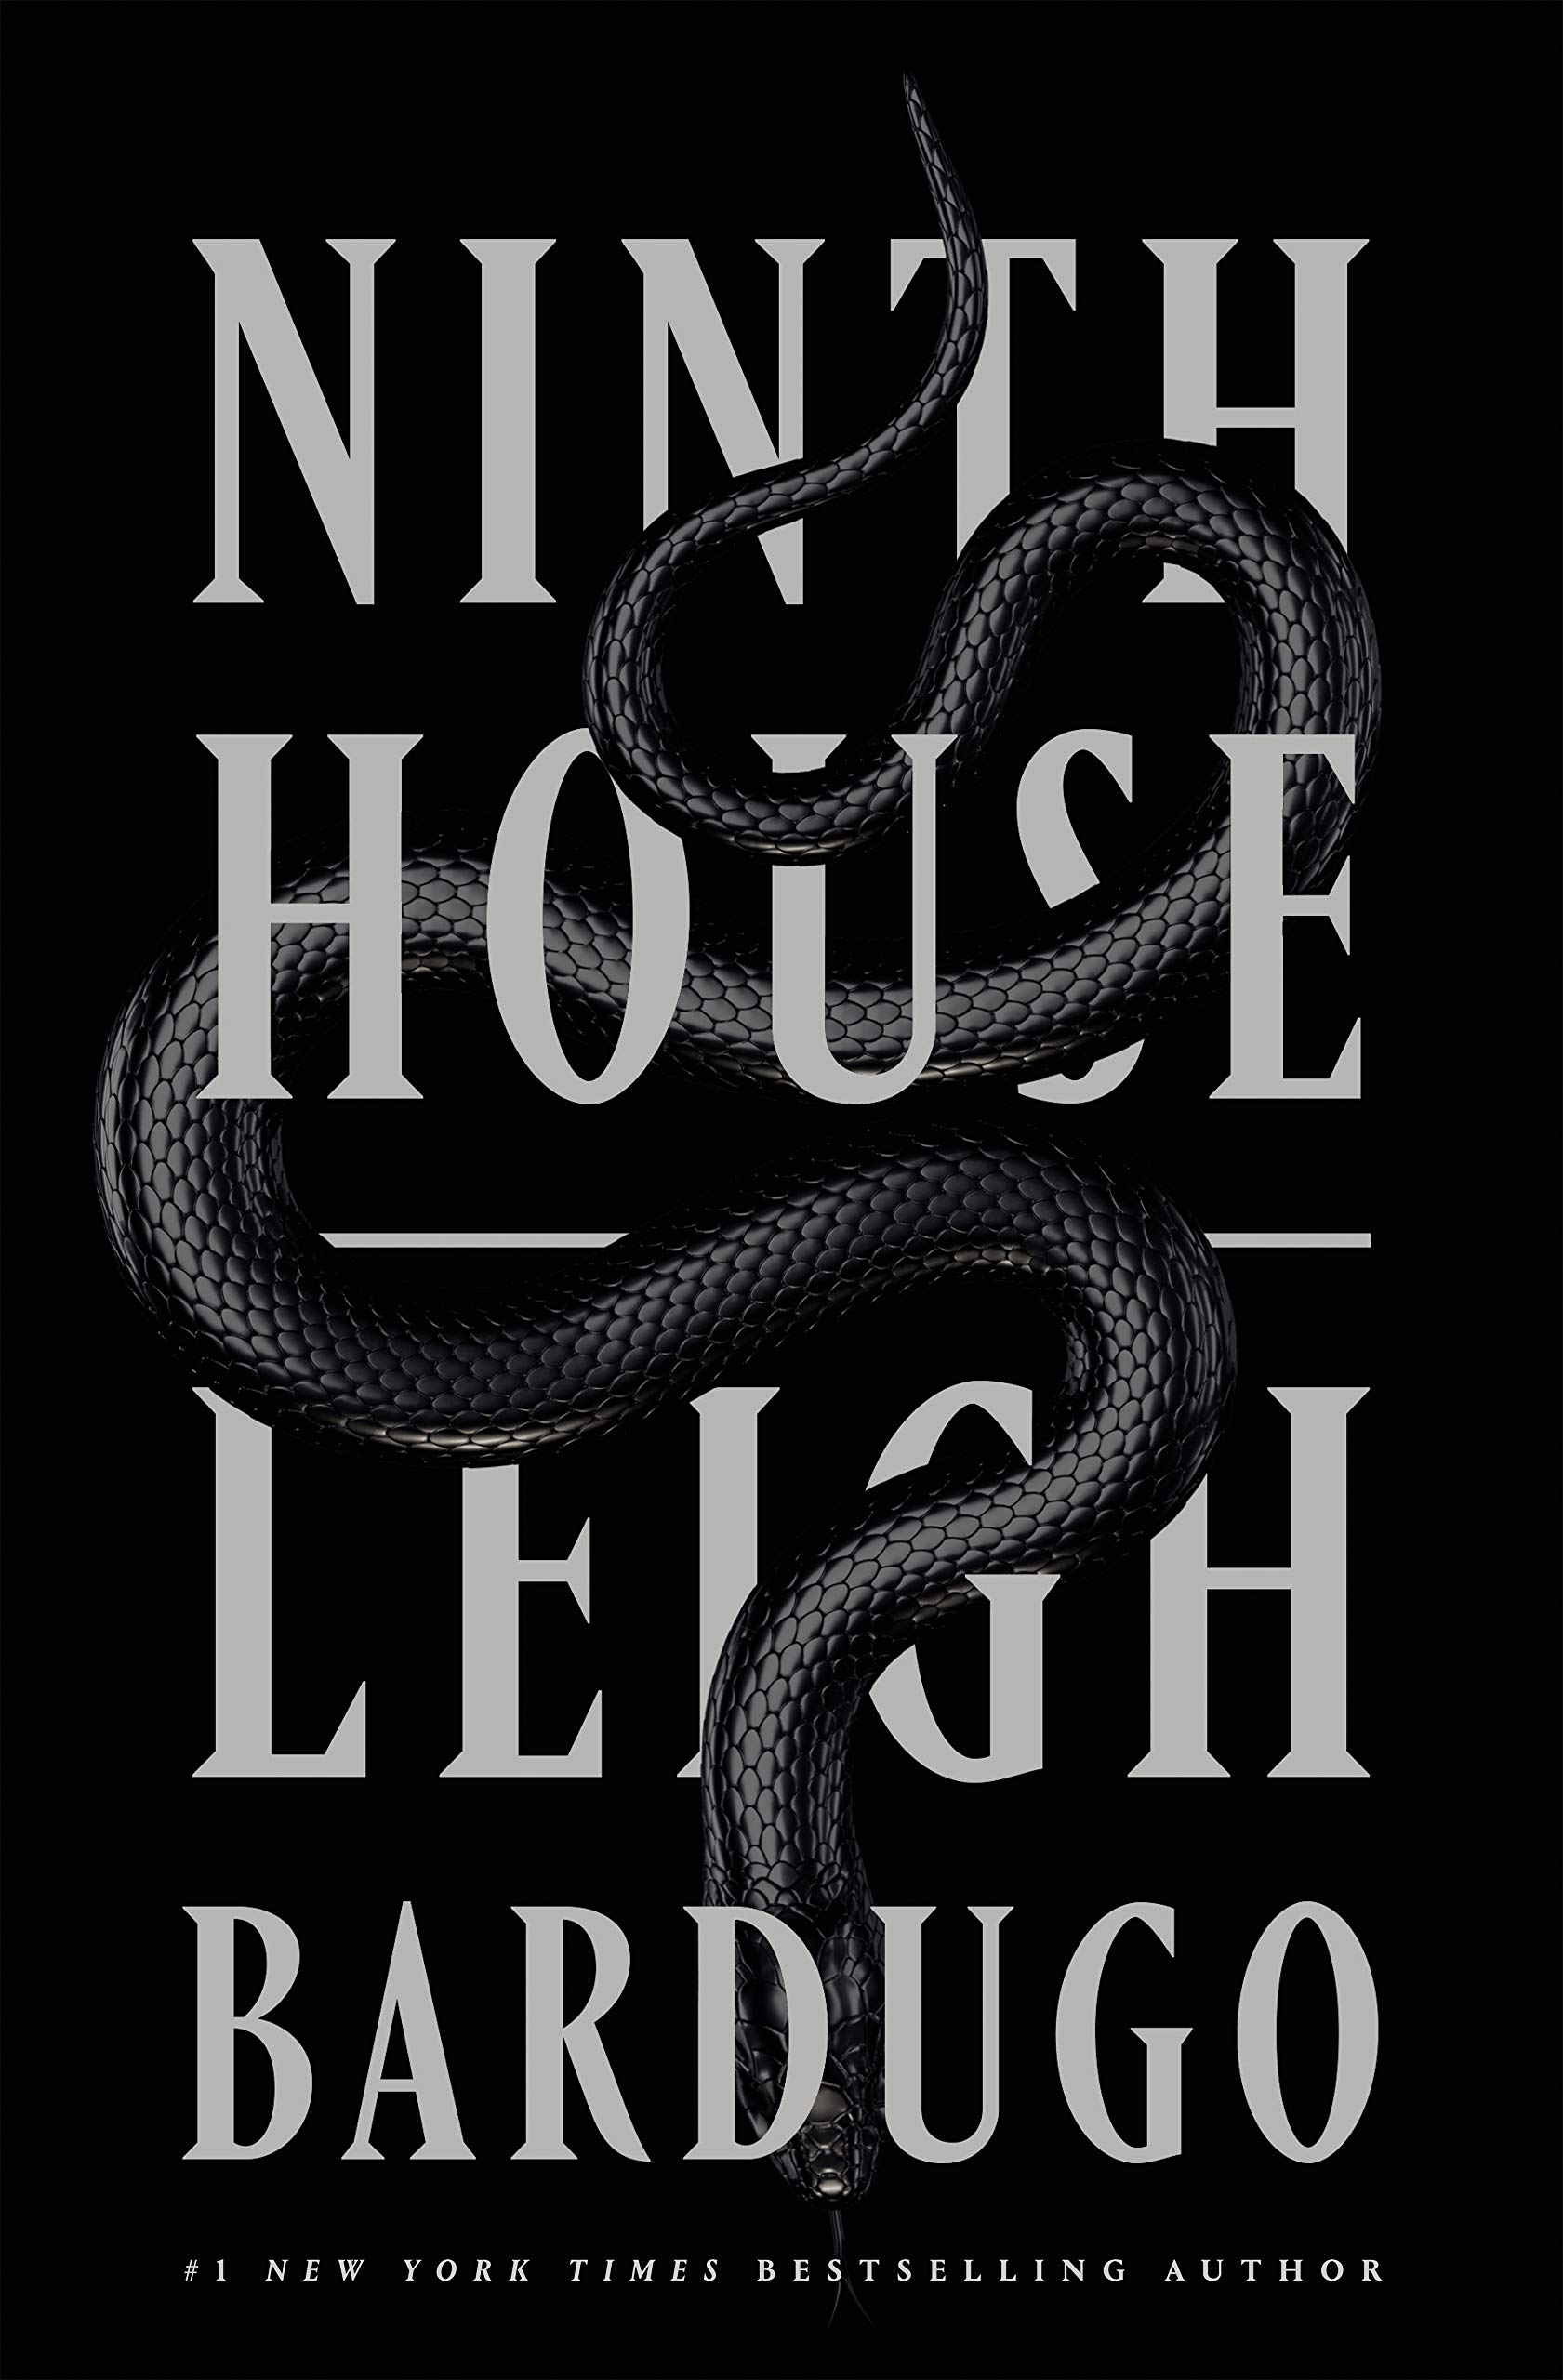 Amazon.com: Ninth House (Alex Stern) (9781250313072): Bardugo ...